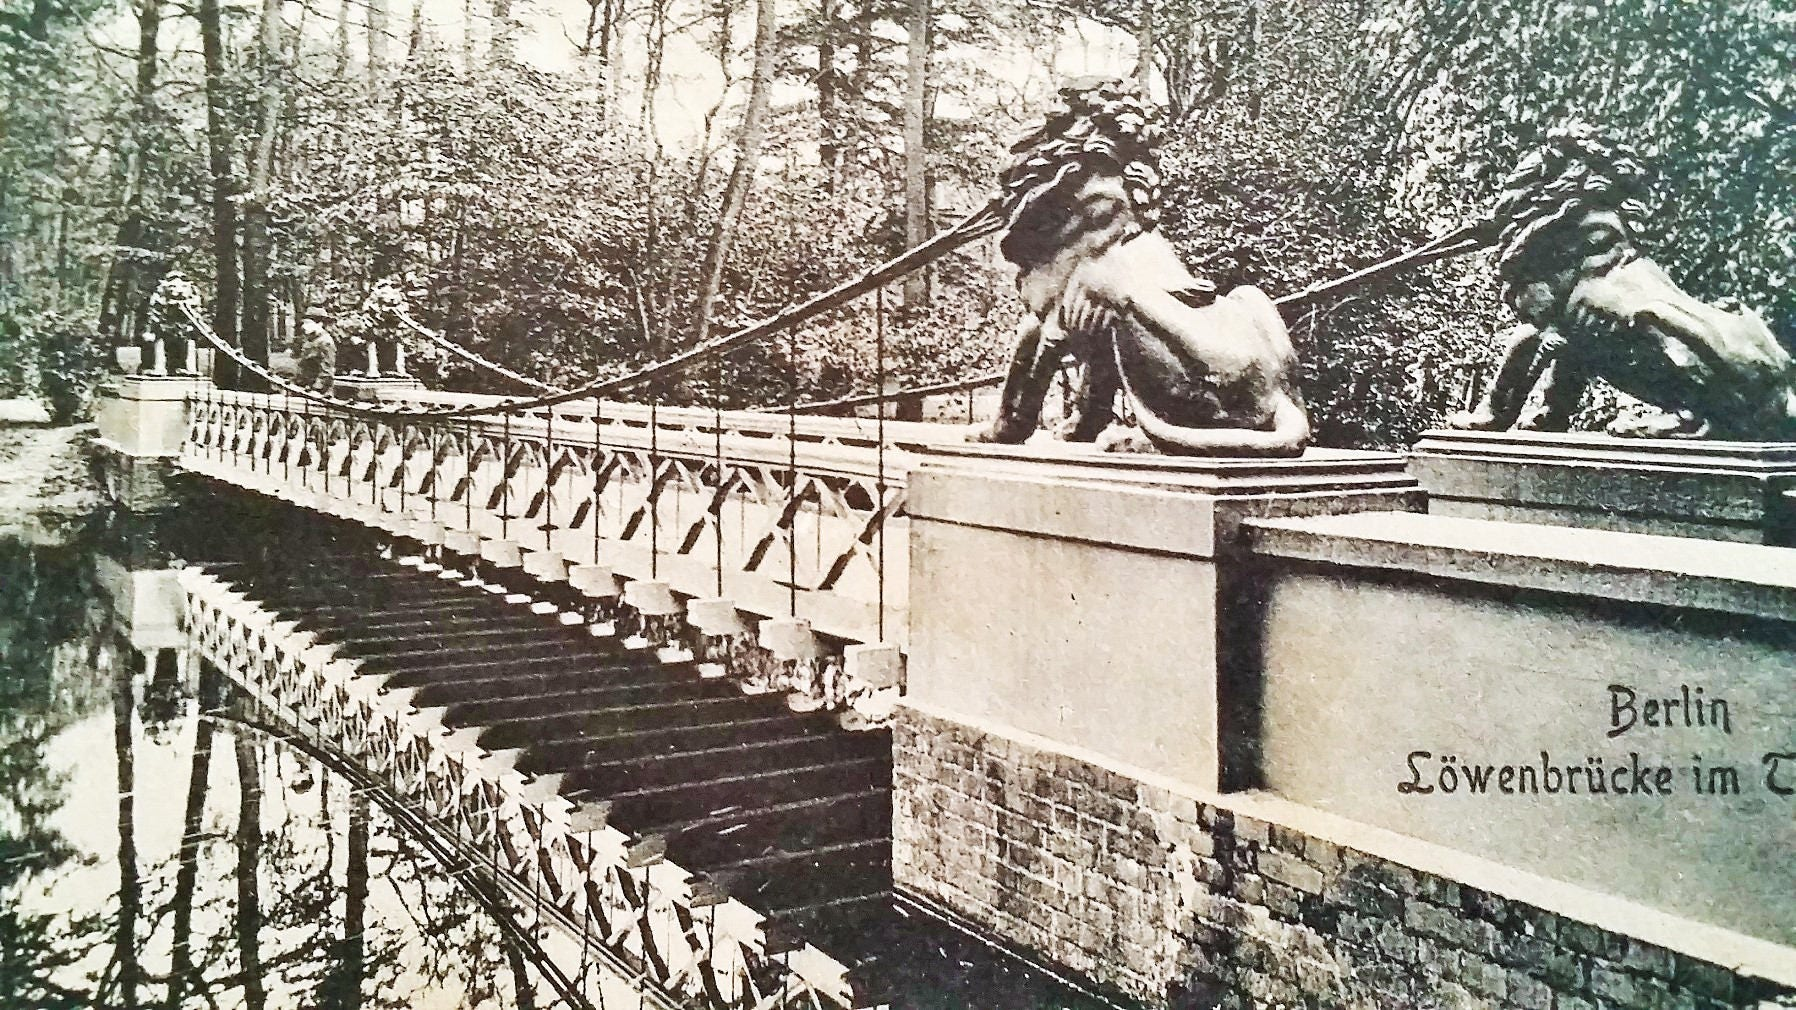 German Postcard 1911, Löwenbrücke im Tiergarten Berlin real photo